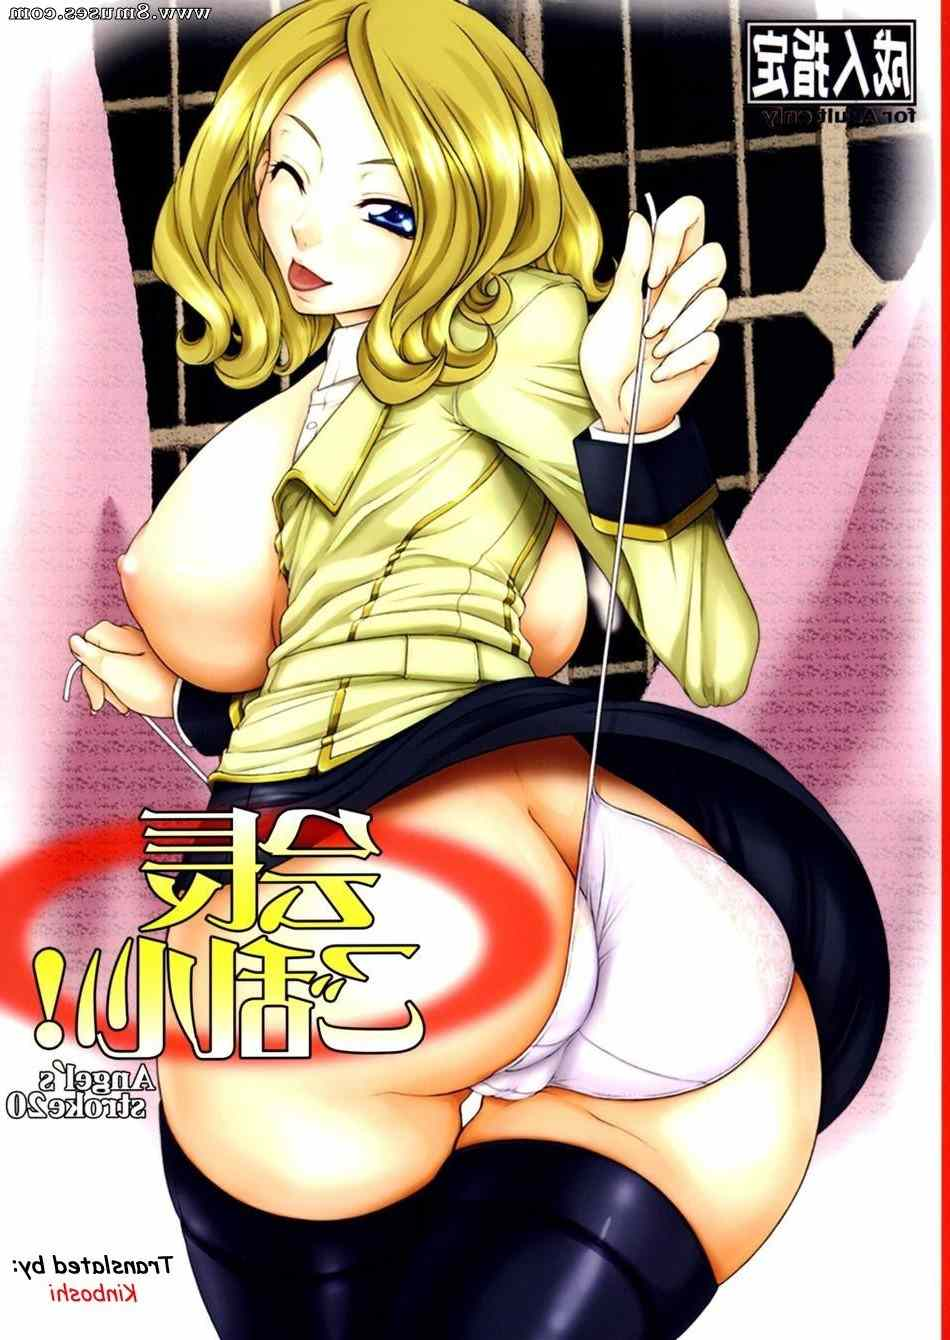 Hentai-and-Manga-English/Kutani/Manga Manga__8muses_-_Sex_and_Porn_Comics_12.jpg